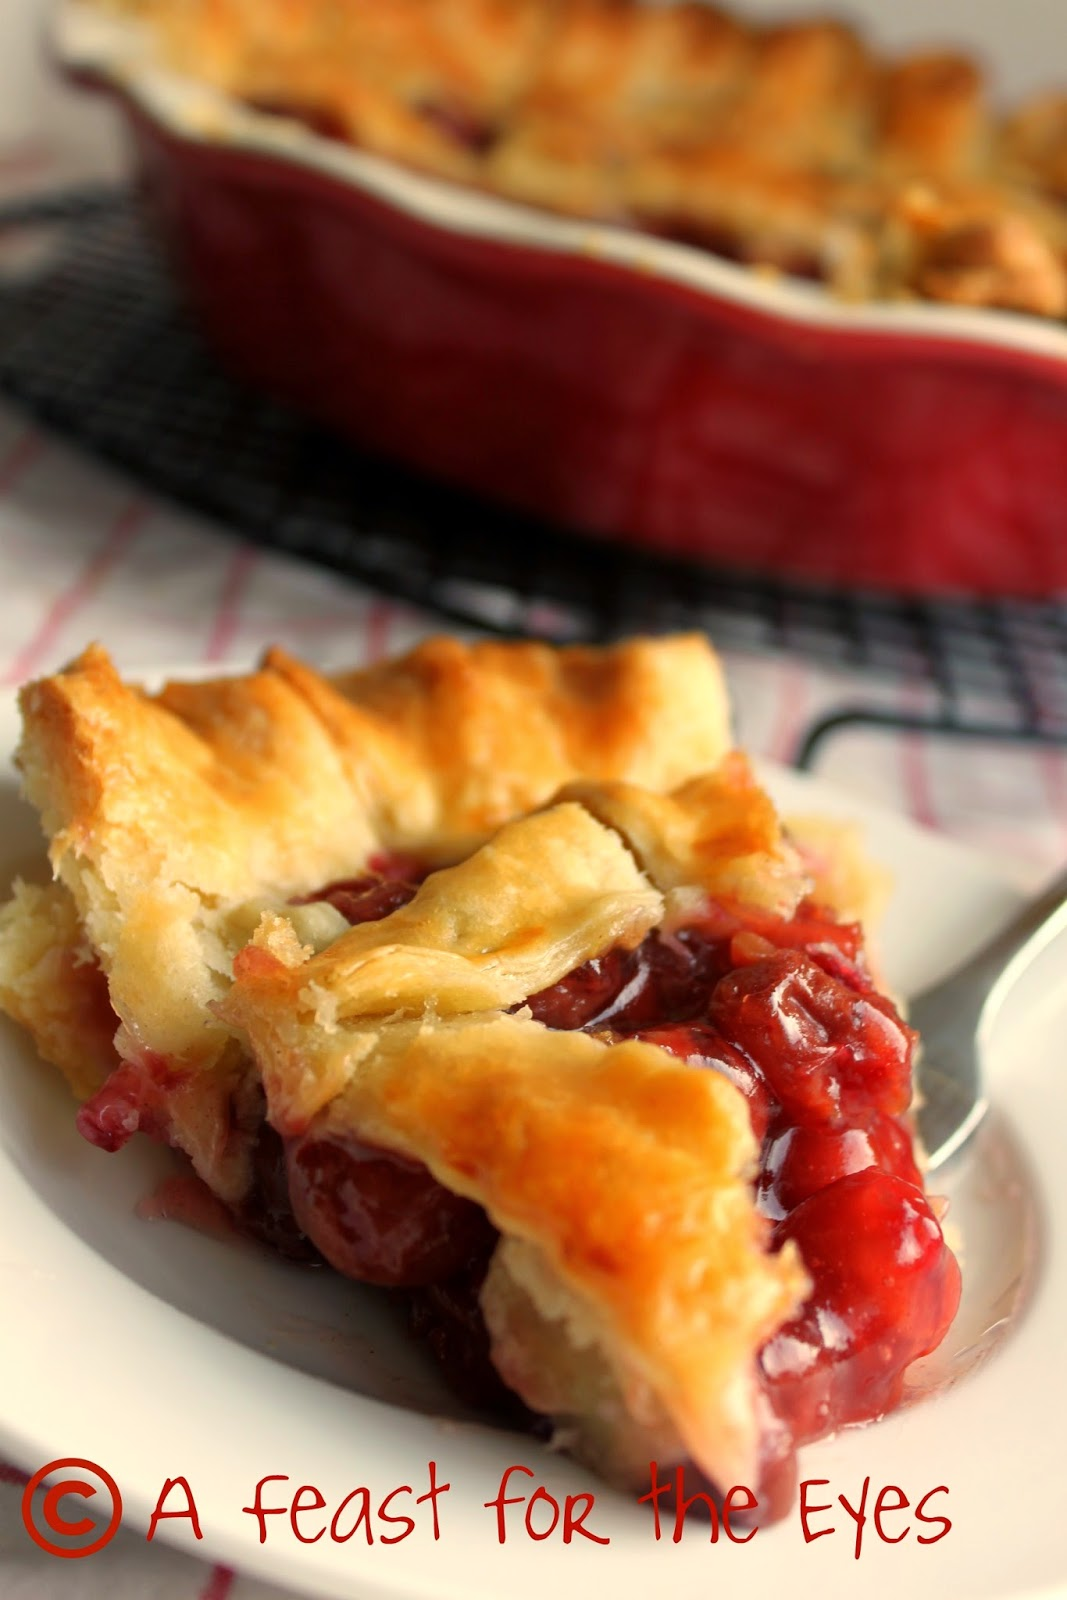 A Feast for the Eyes: Incredible Cherry Pie!